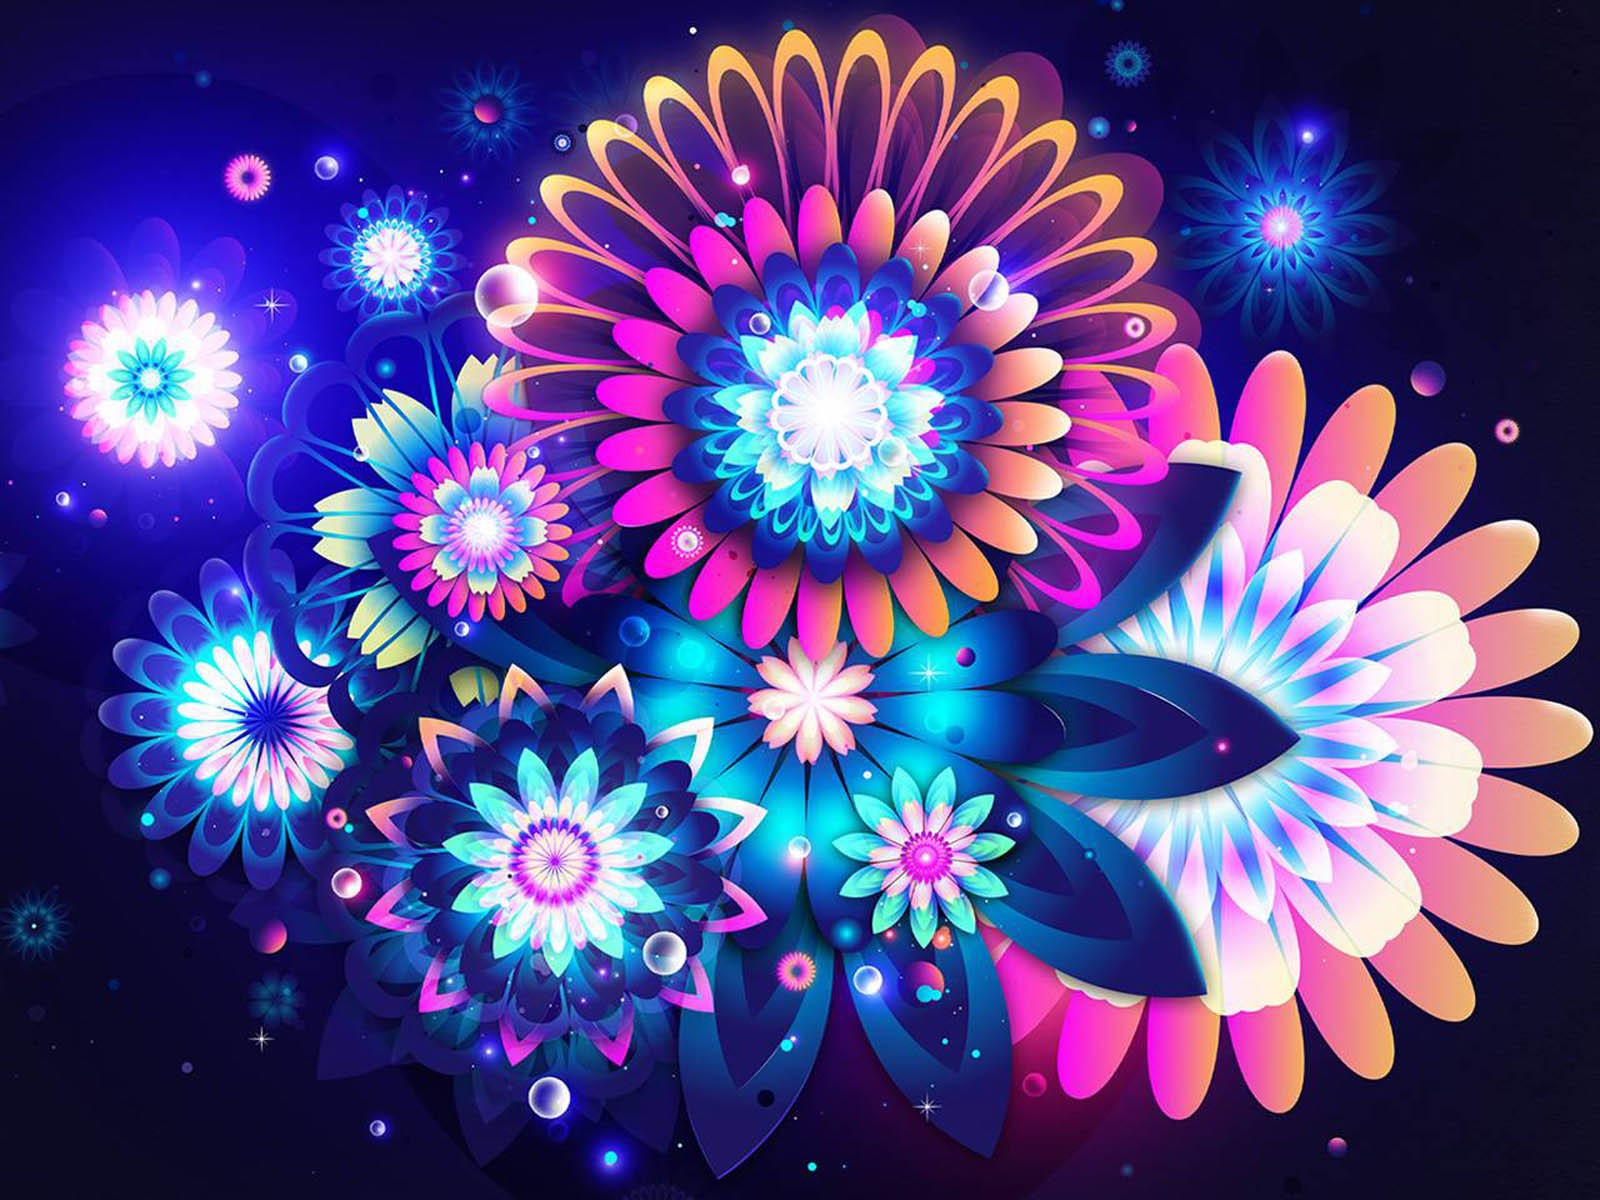 Abstract Flower Desktop Hd Wallpaper Xpx Cool Flowers 1600x1200px